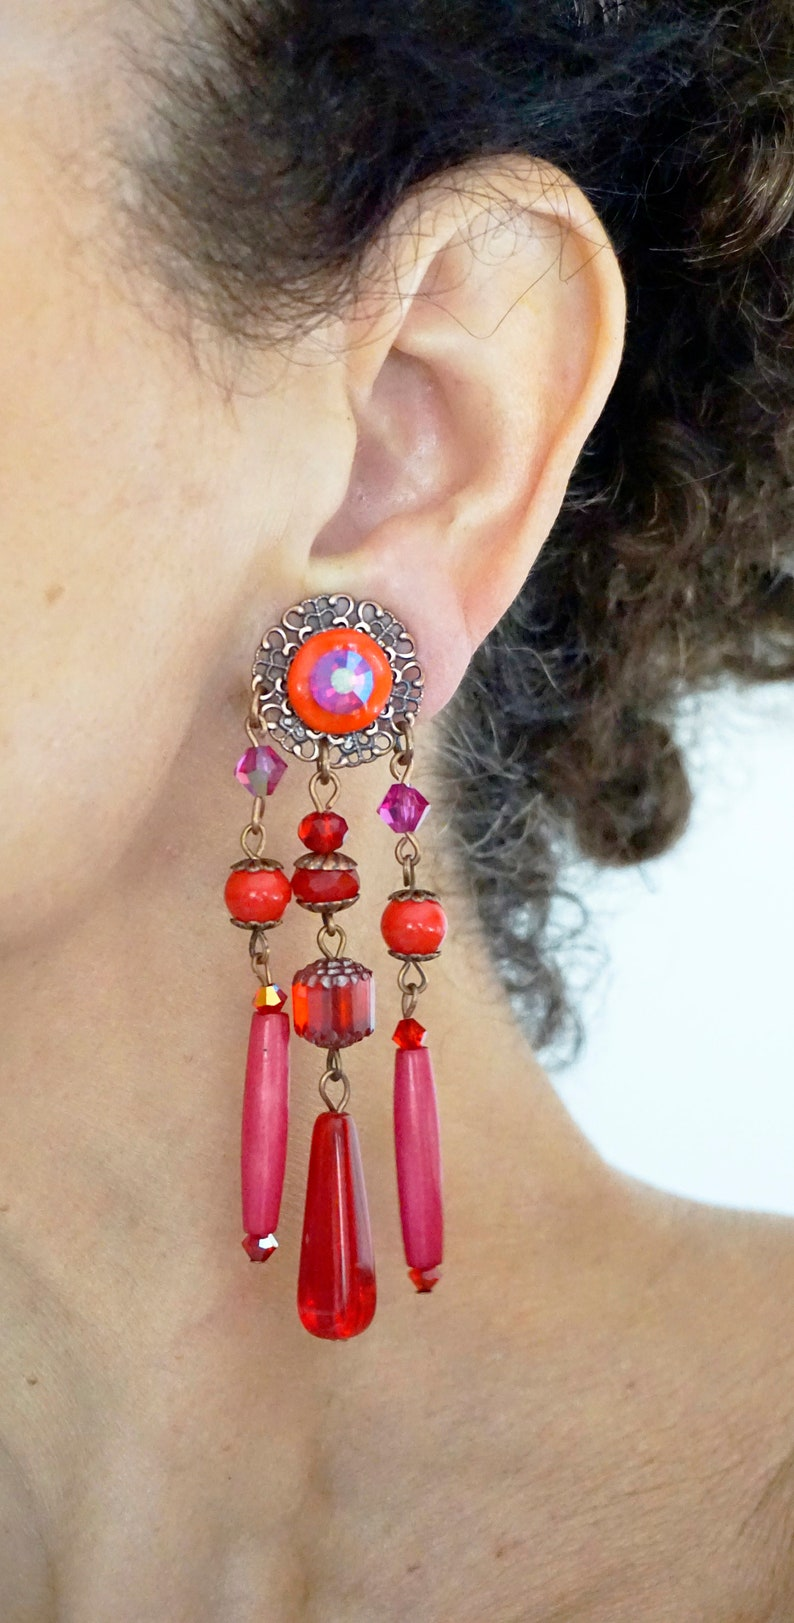 CLIPS on Earrings  Red-Pink Fuchsia /& Copper Clips earrings Dangle Chandelier Crystal Beads French design Hand made Nickel free Gift for her